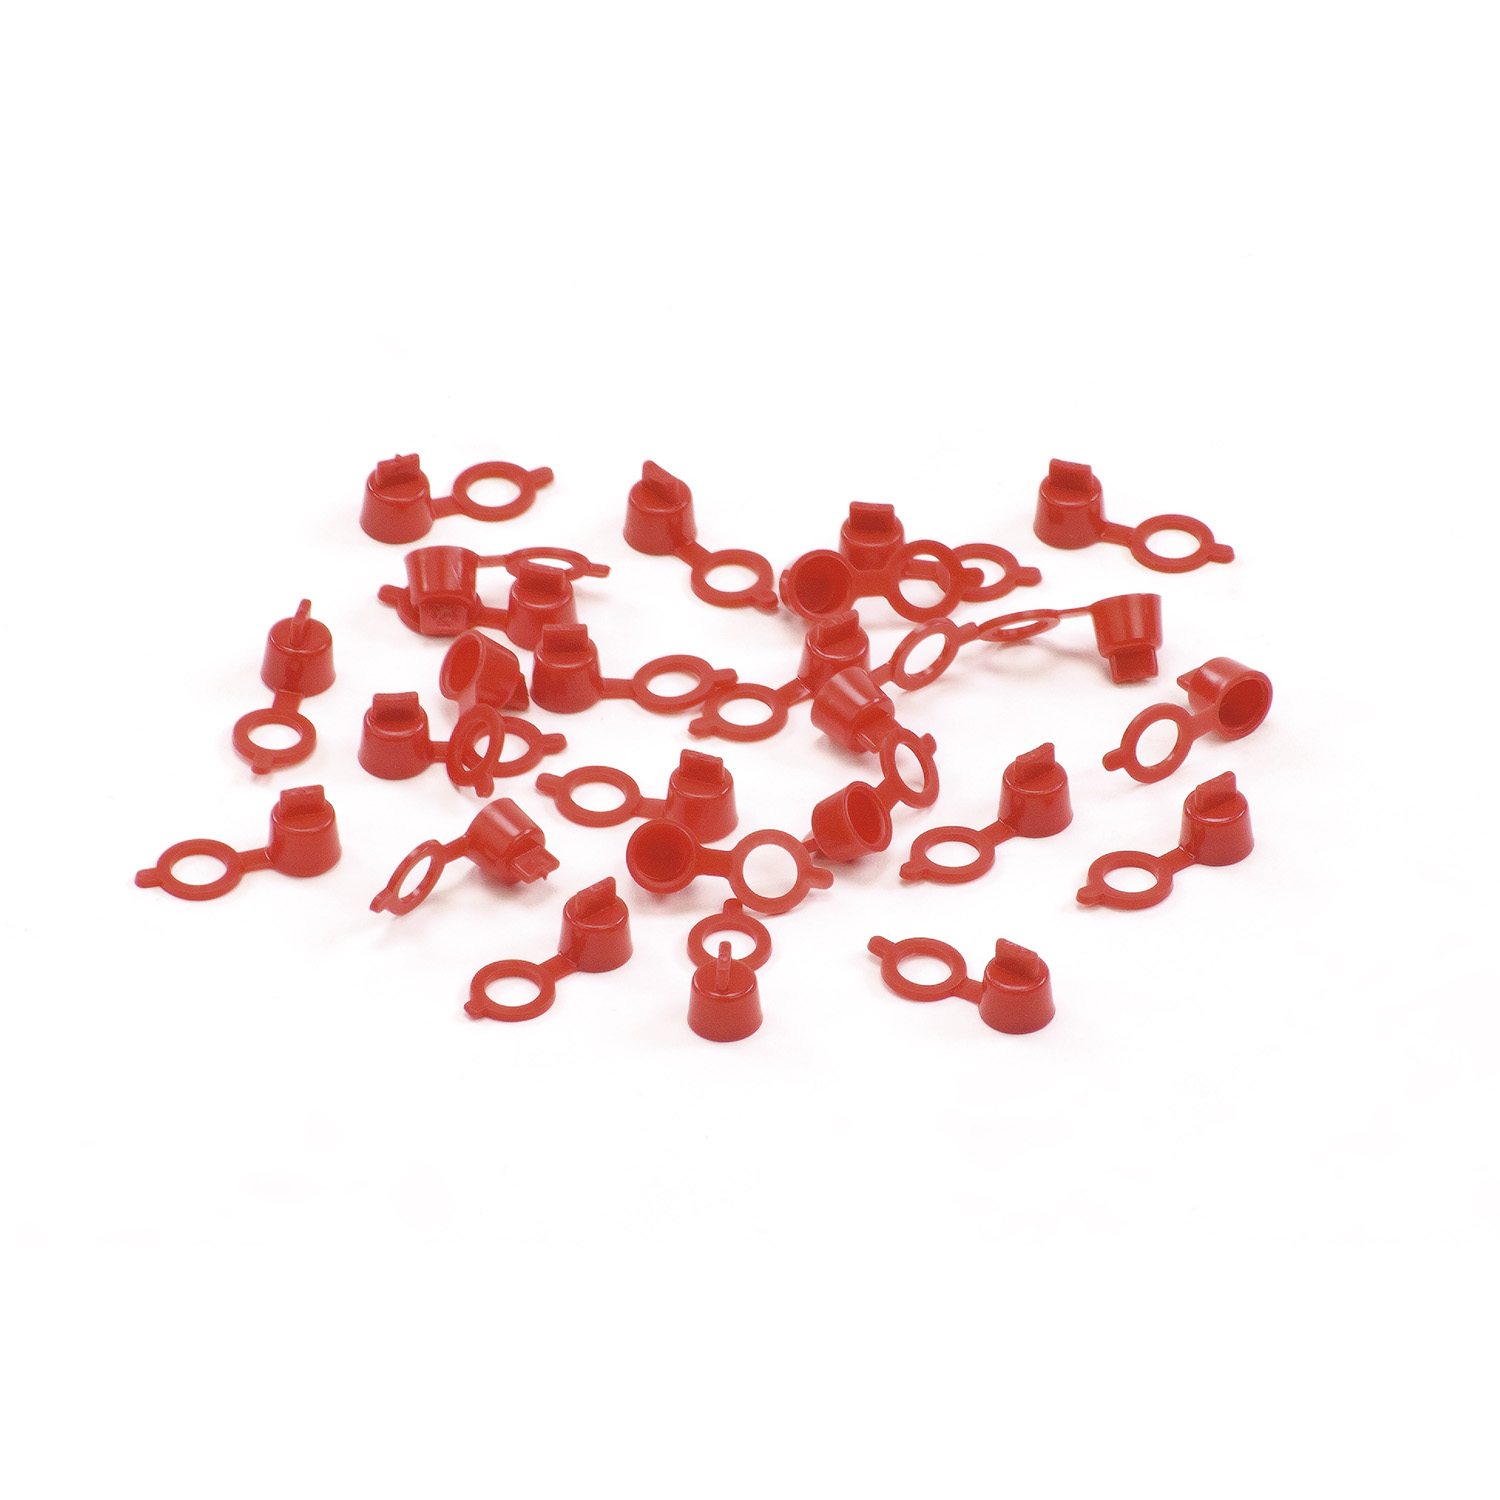 Red Zerk Caps  25-Pack from Hotchkis Sport Suspension